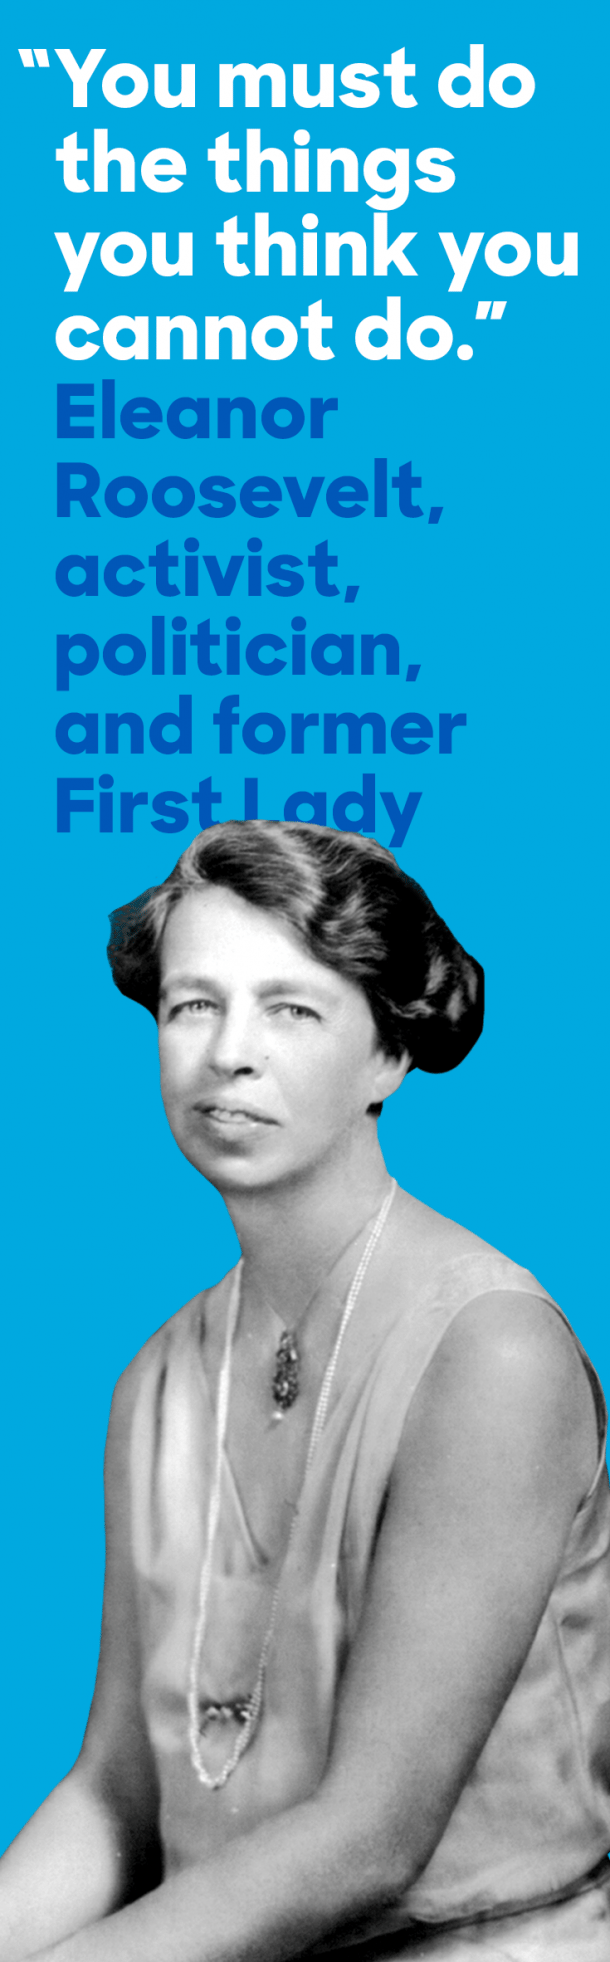 In March 1933 First Lady Eleanor Roosevelt held the first